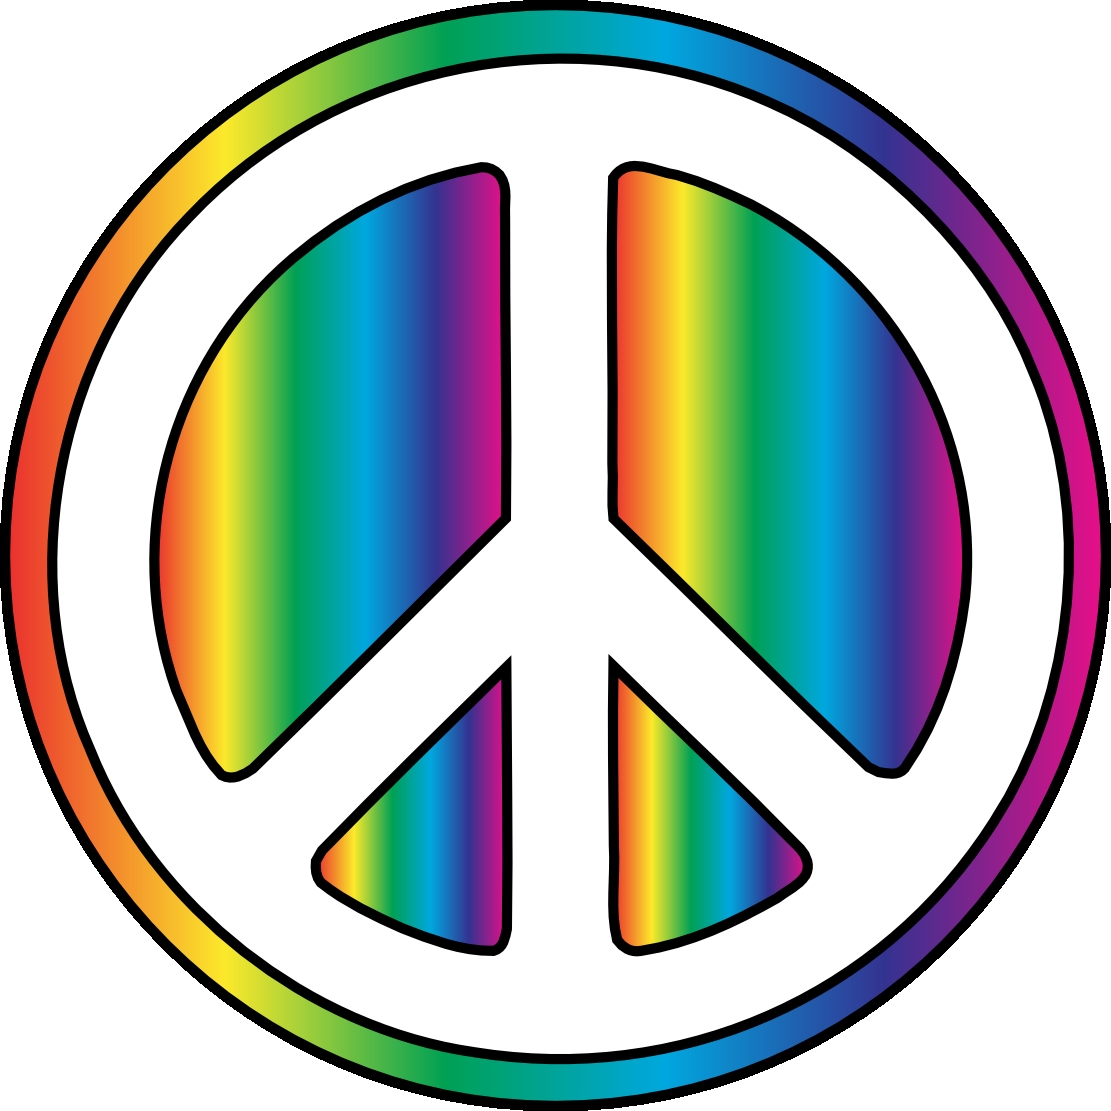 Hippie clipart. Awesome design digital collection